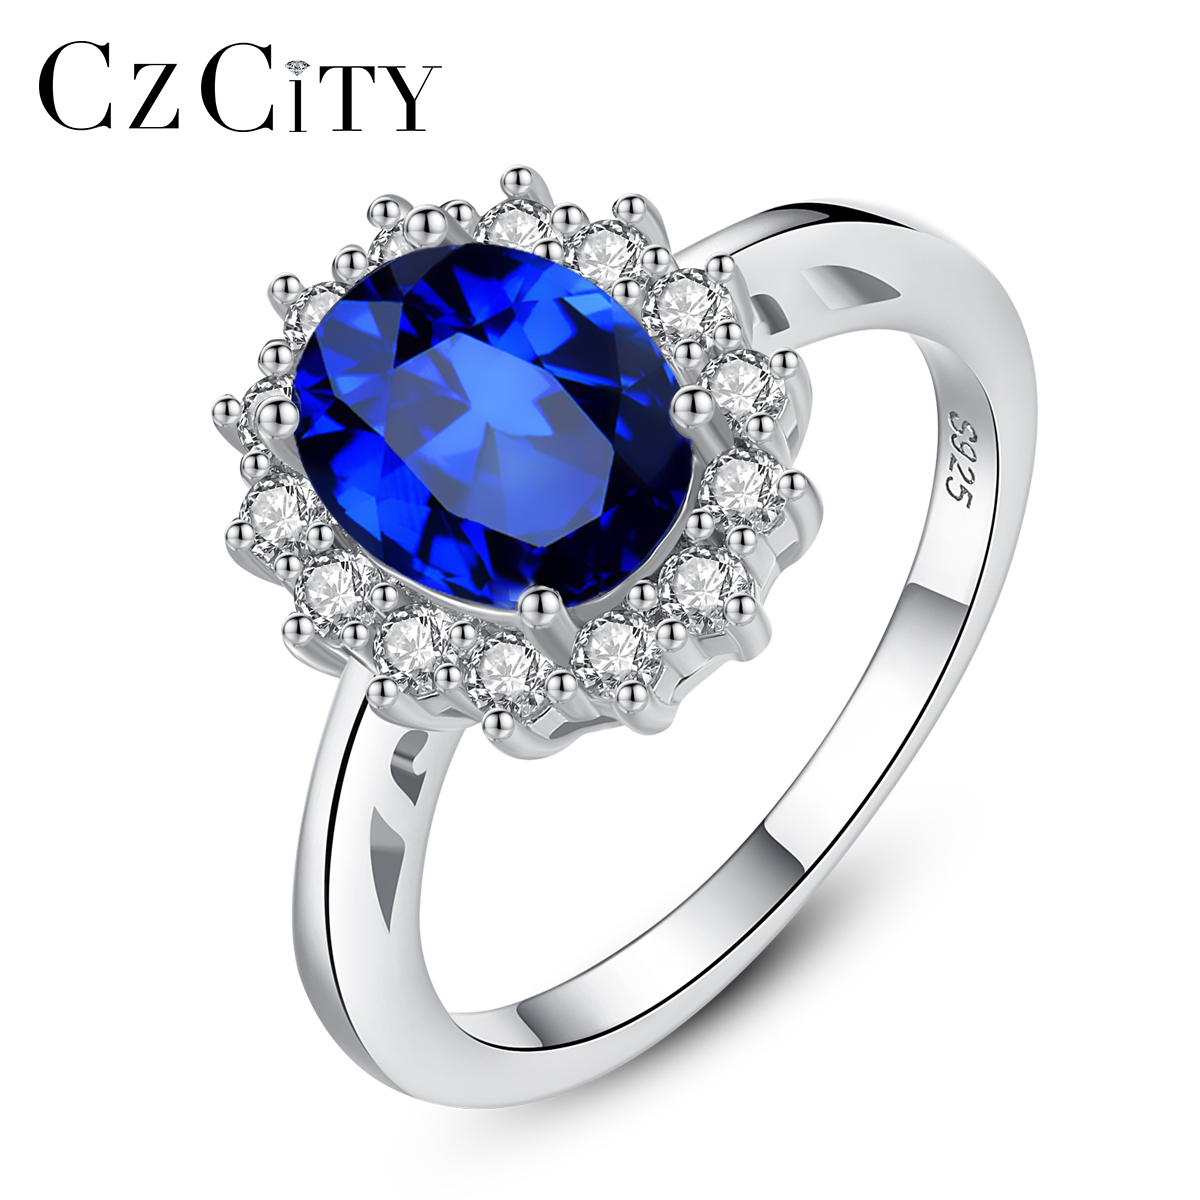 CZCITY Gemstone Rings Jewelry Ruby Emerald Kate Engagement Sapphire Diana Wedding 925-Sterling-Silver